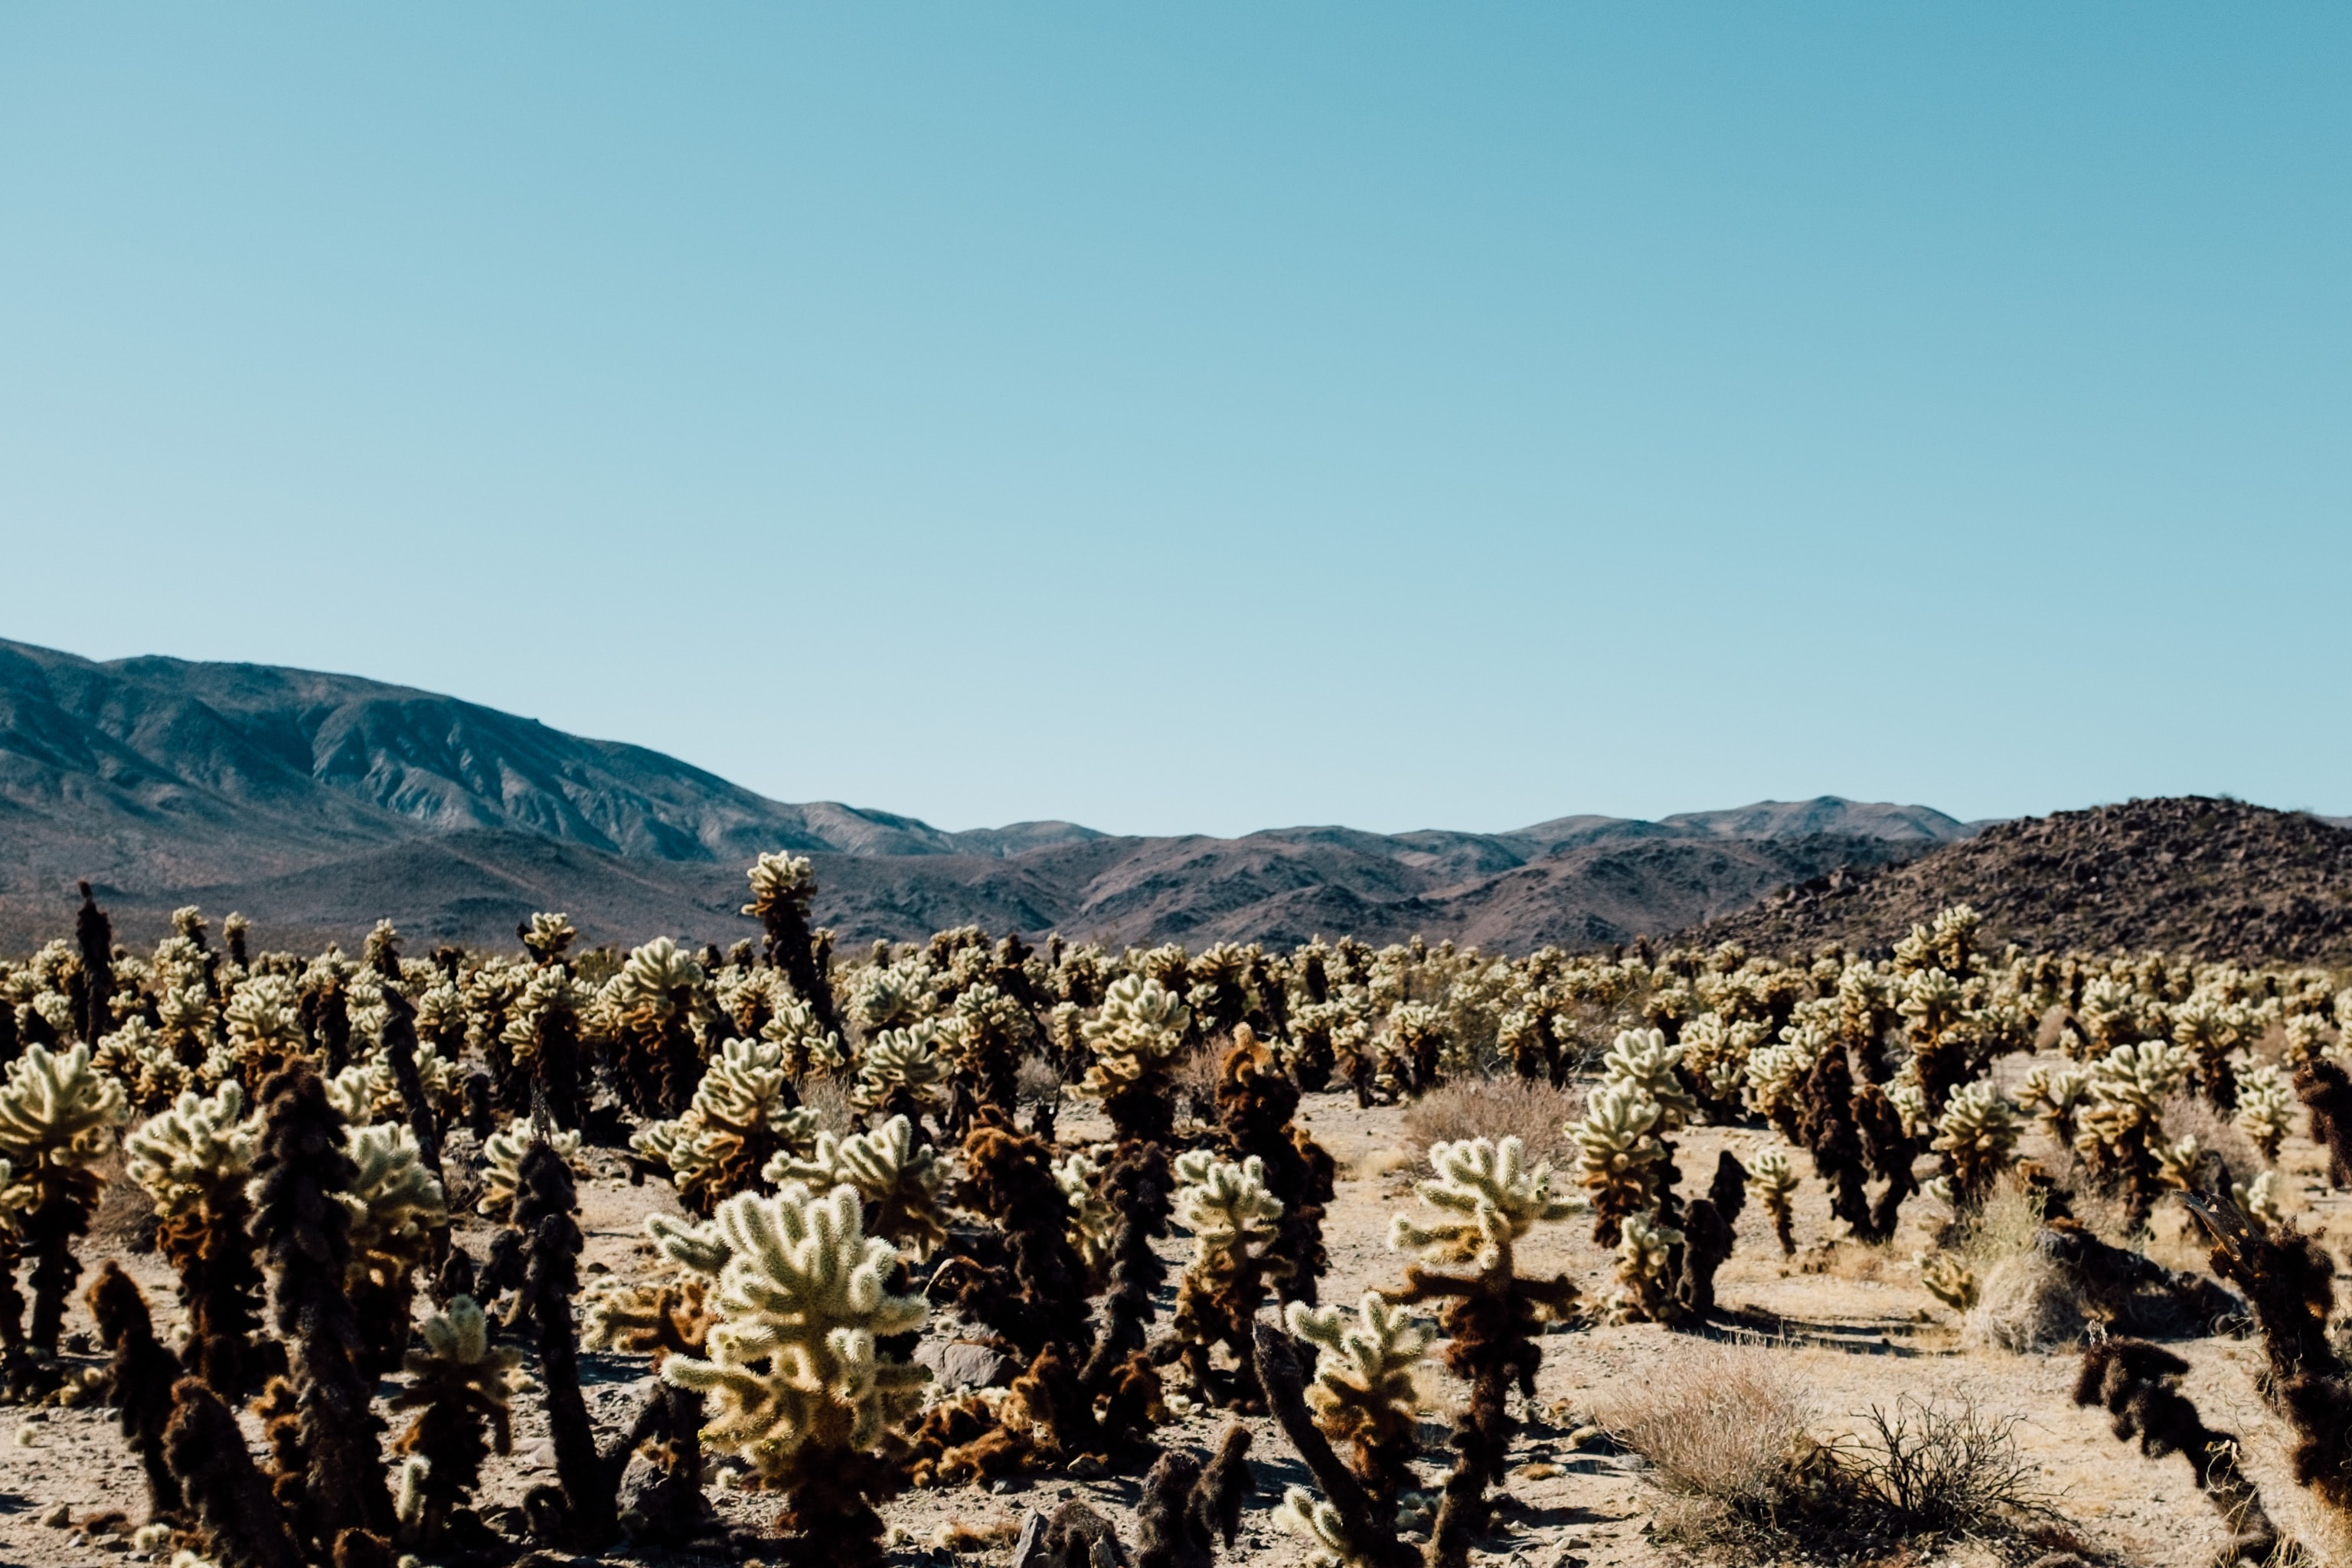 Cacti and succulents in the desert landscape of Joshua Tree